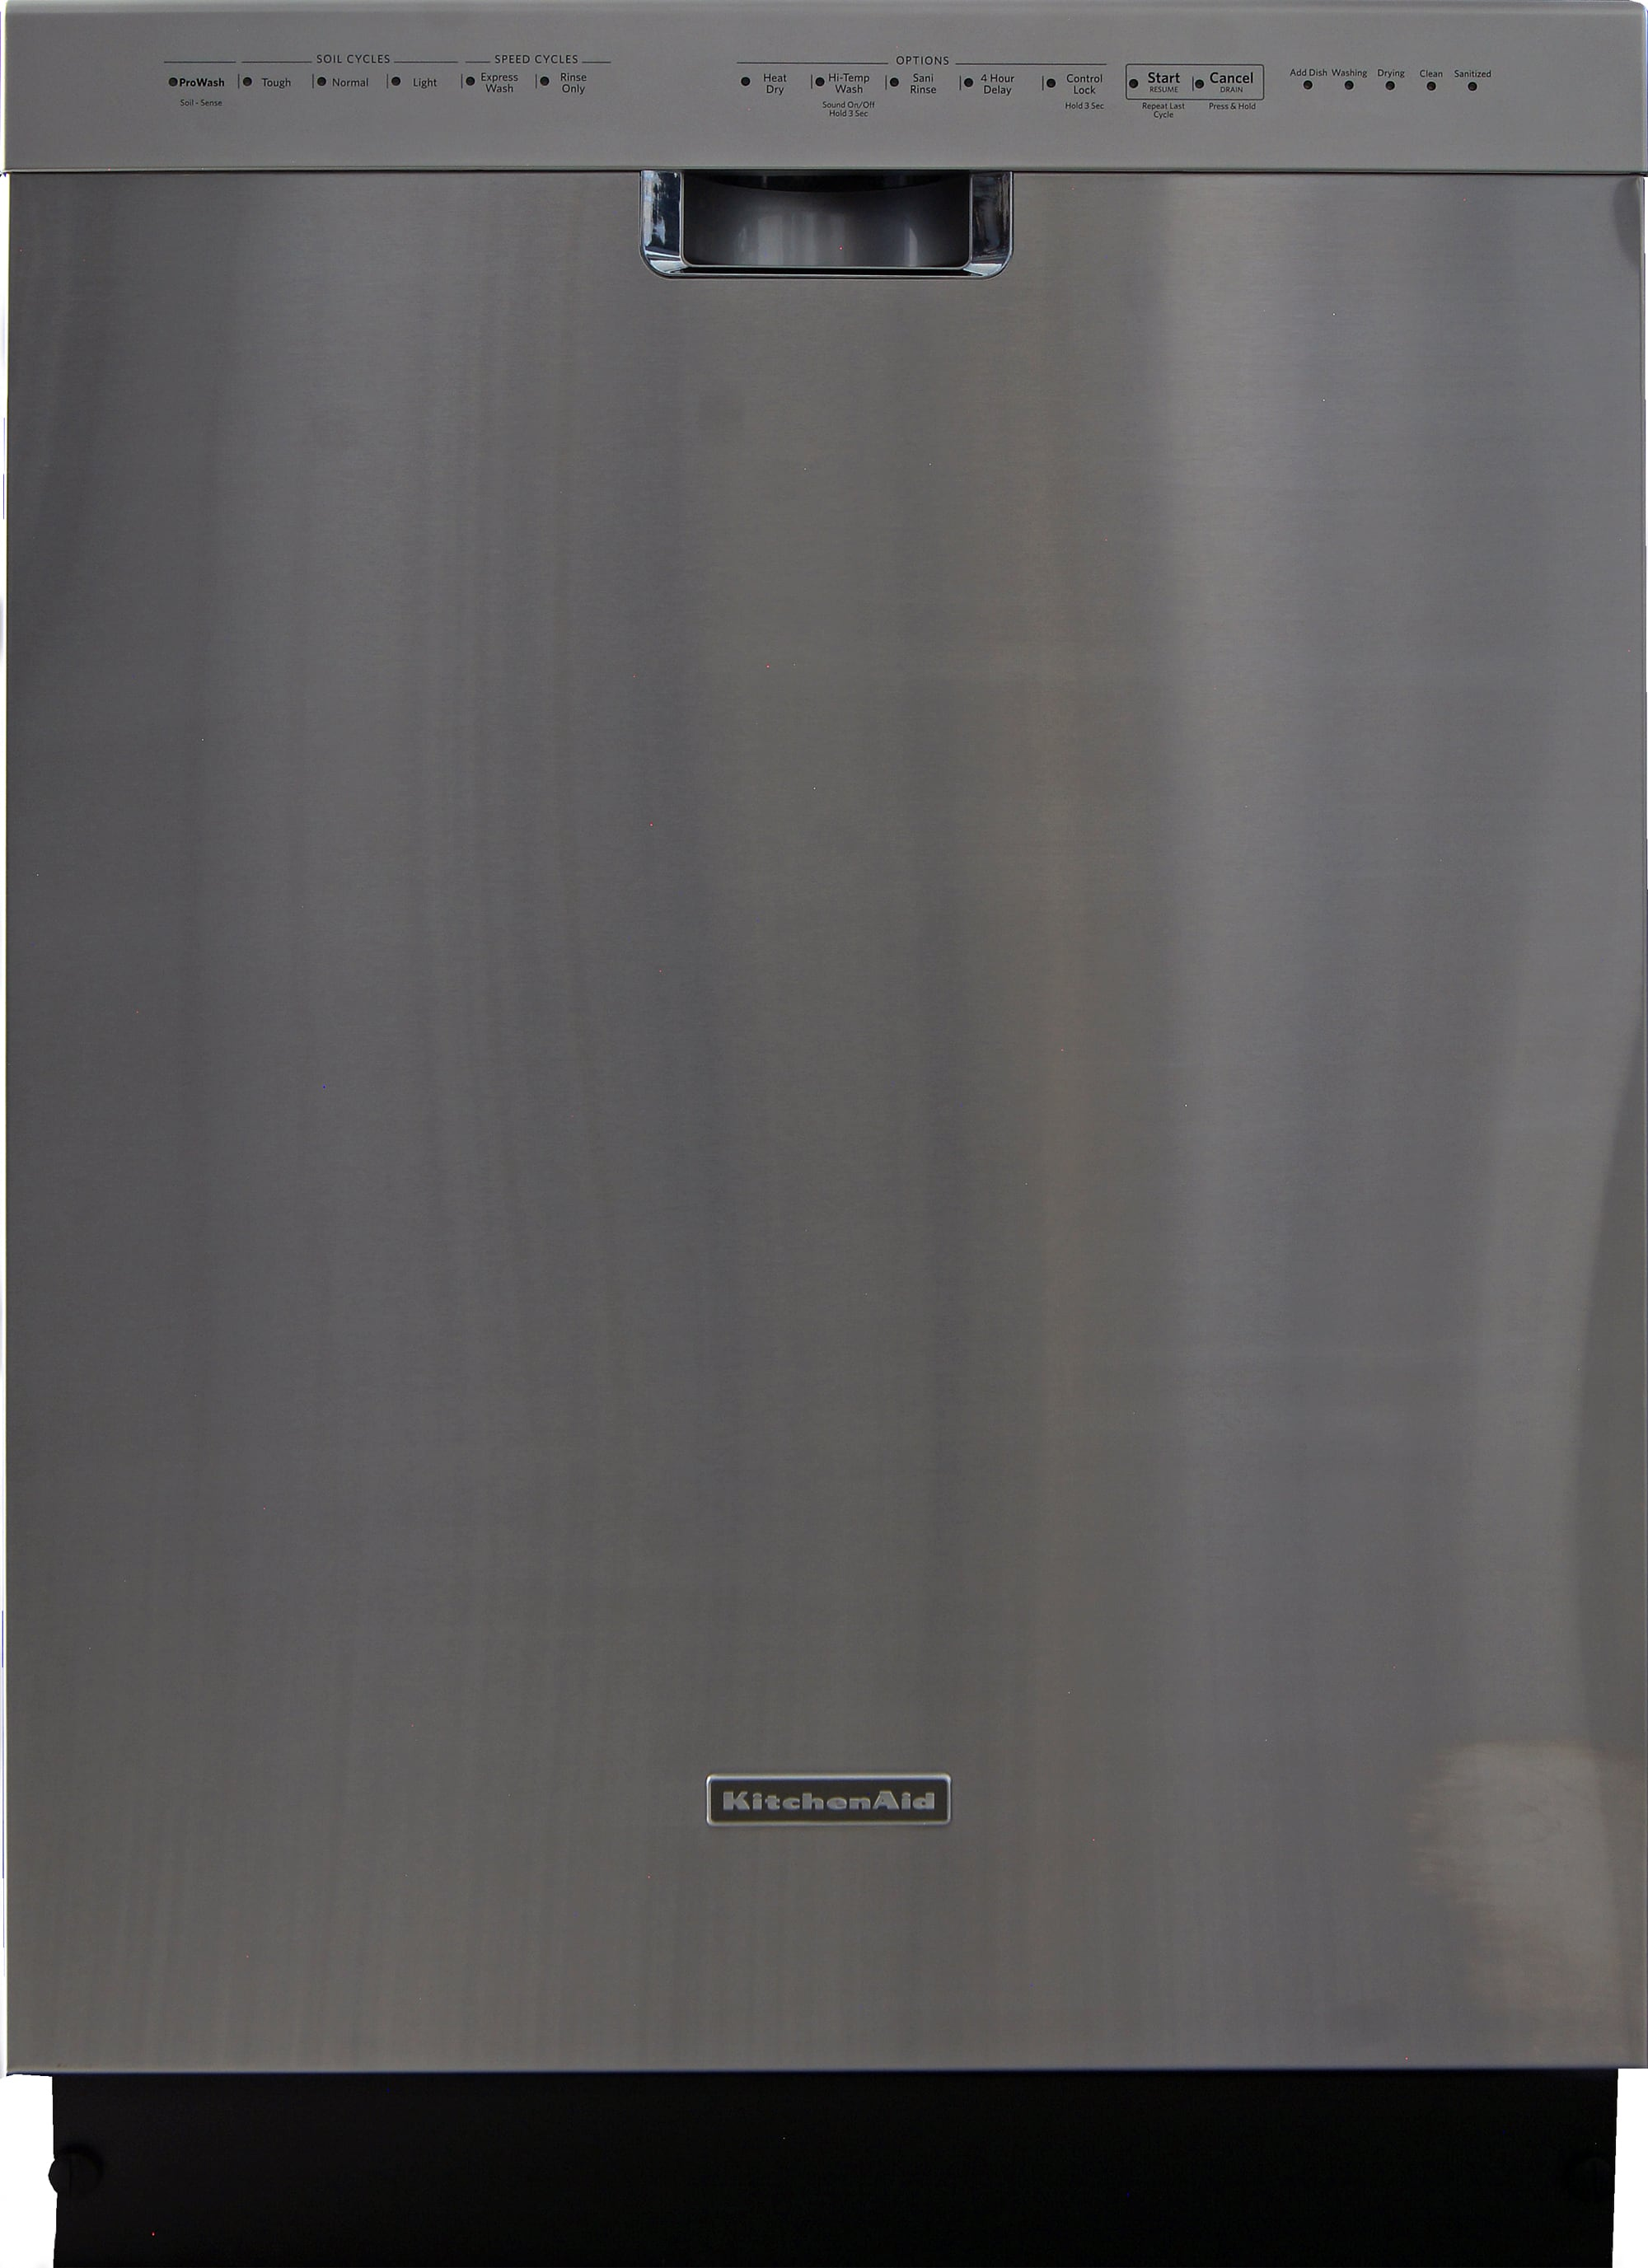 Kitchen Aid Dishwasher Rinse How Long